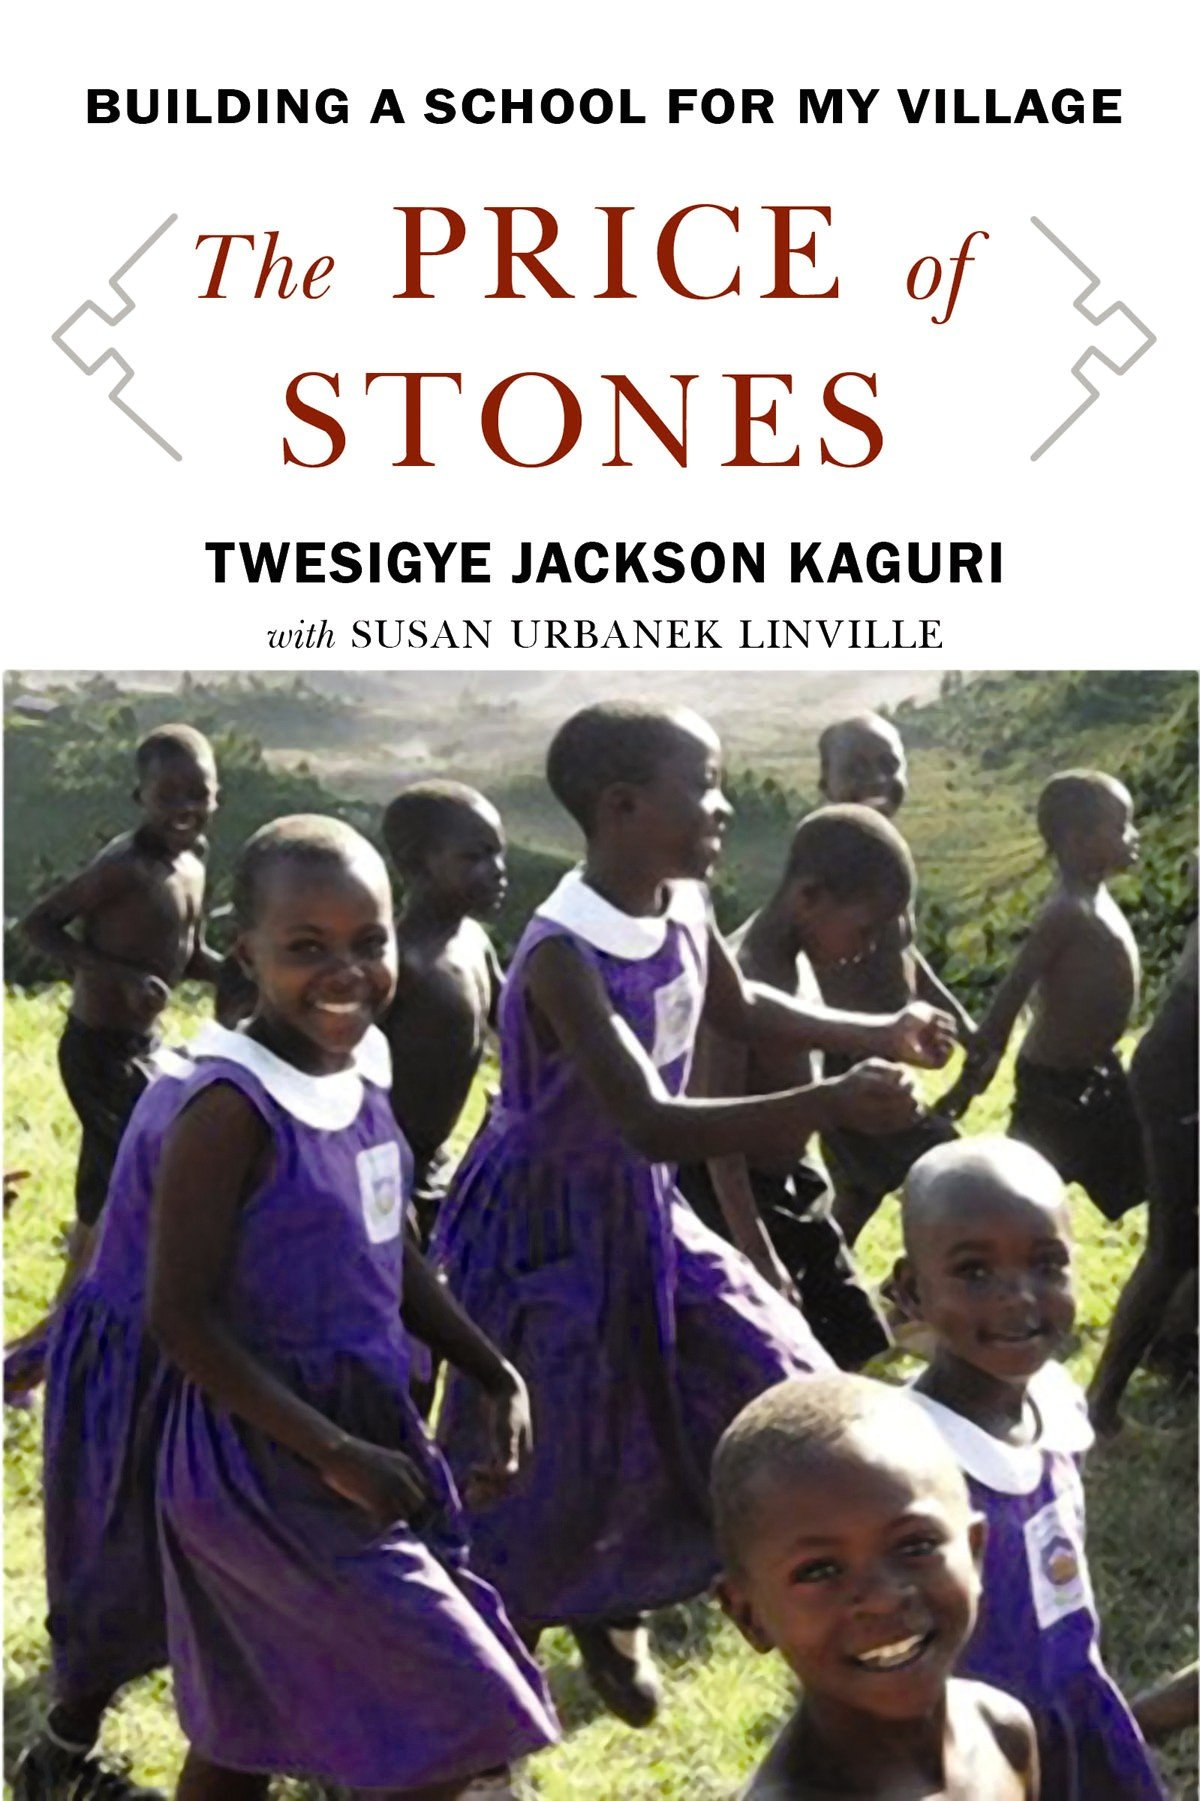 The Price of Stones - Building a School for My Village - Twesigye Jackson Kaguri, Susan Urbanek Linville